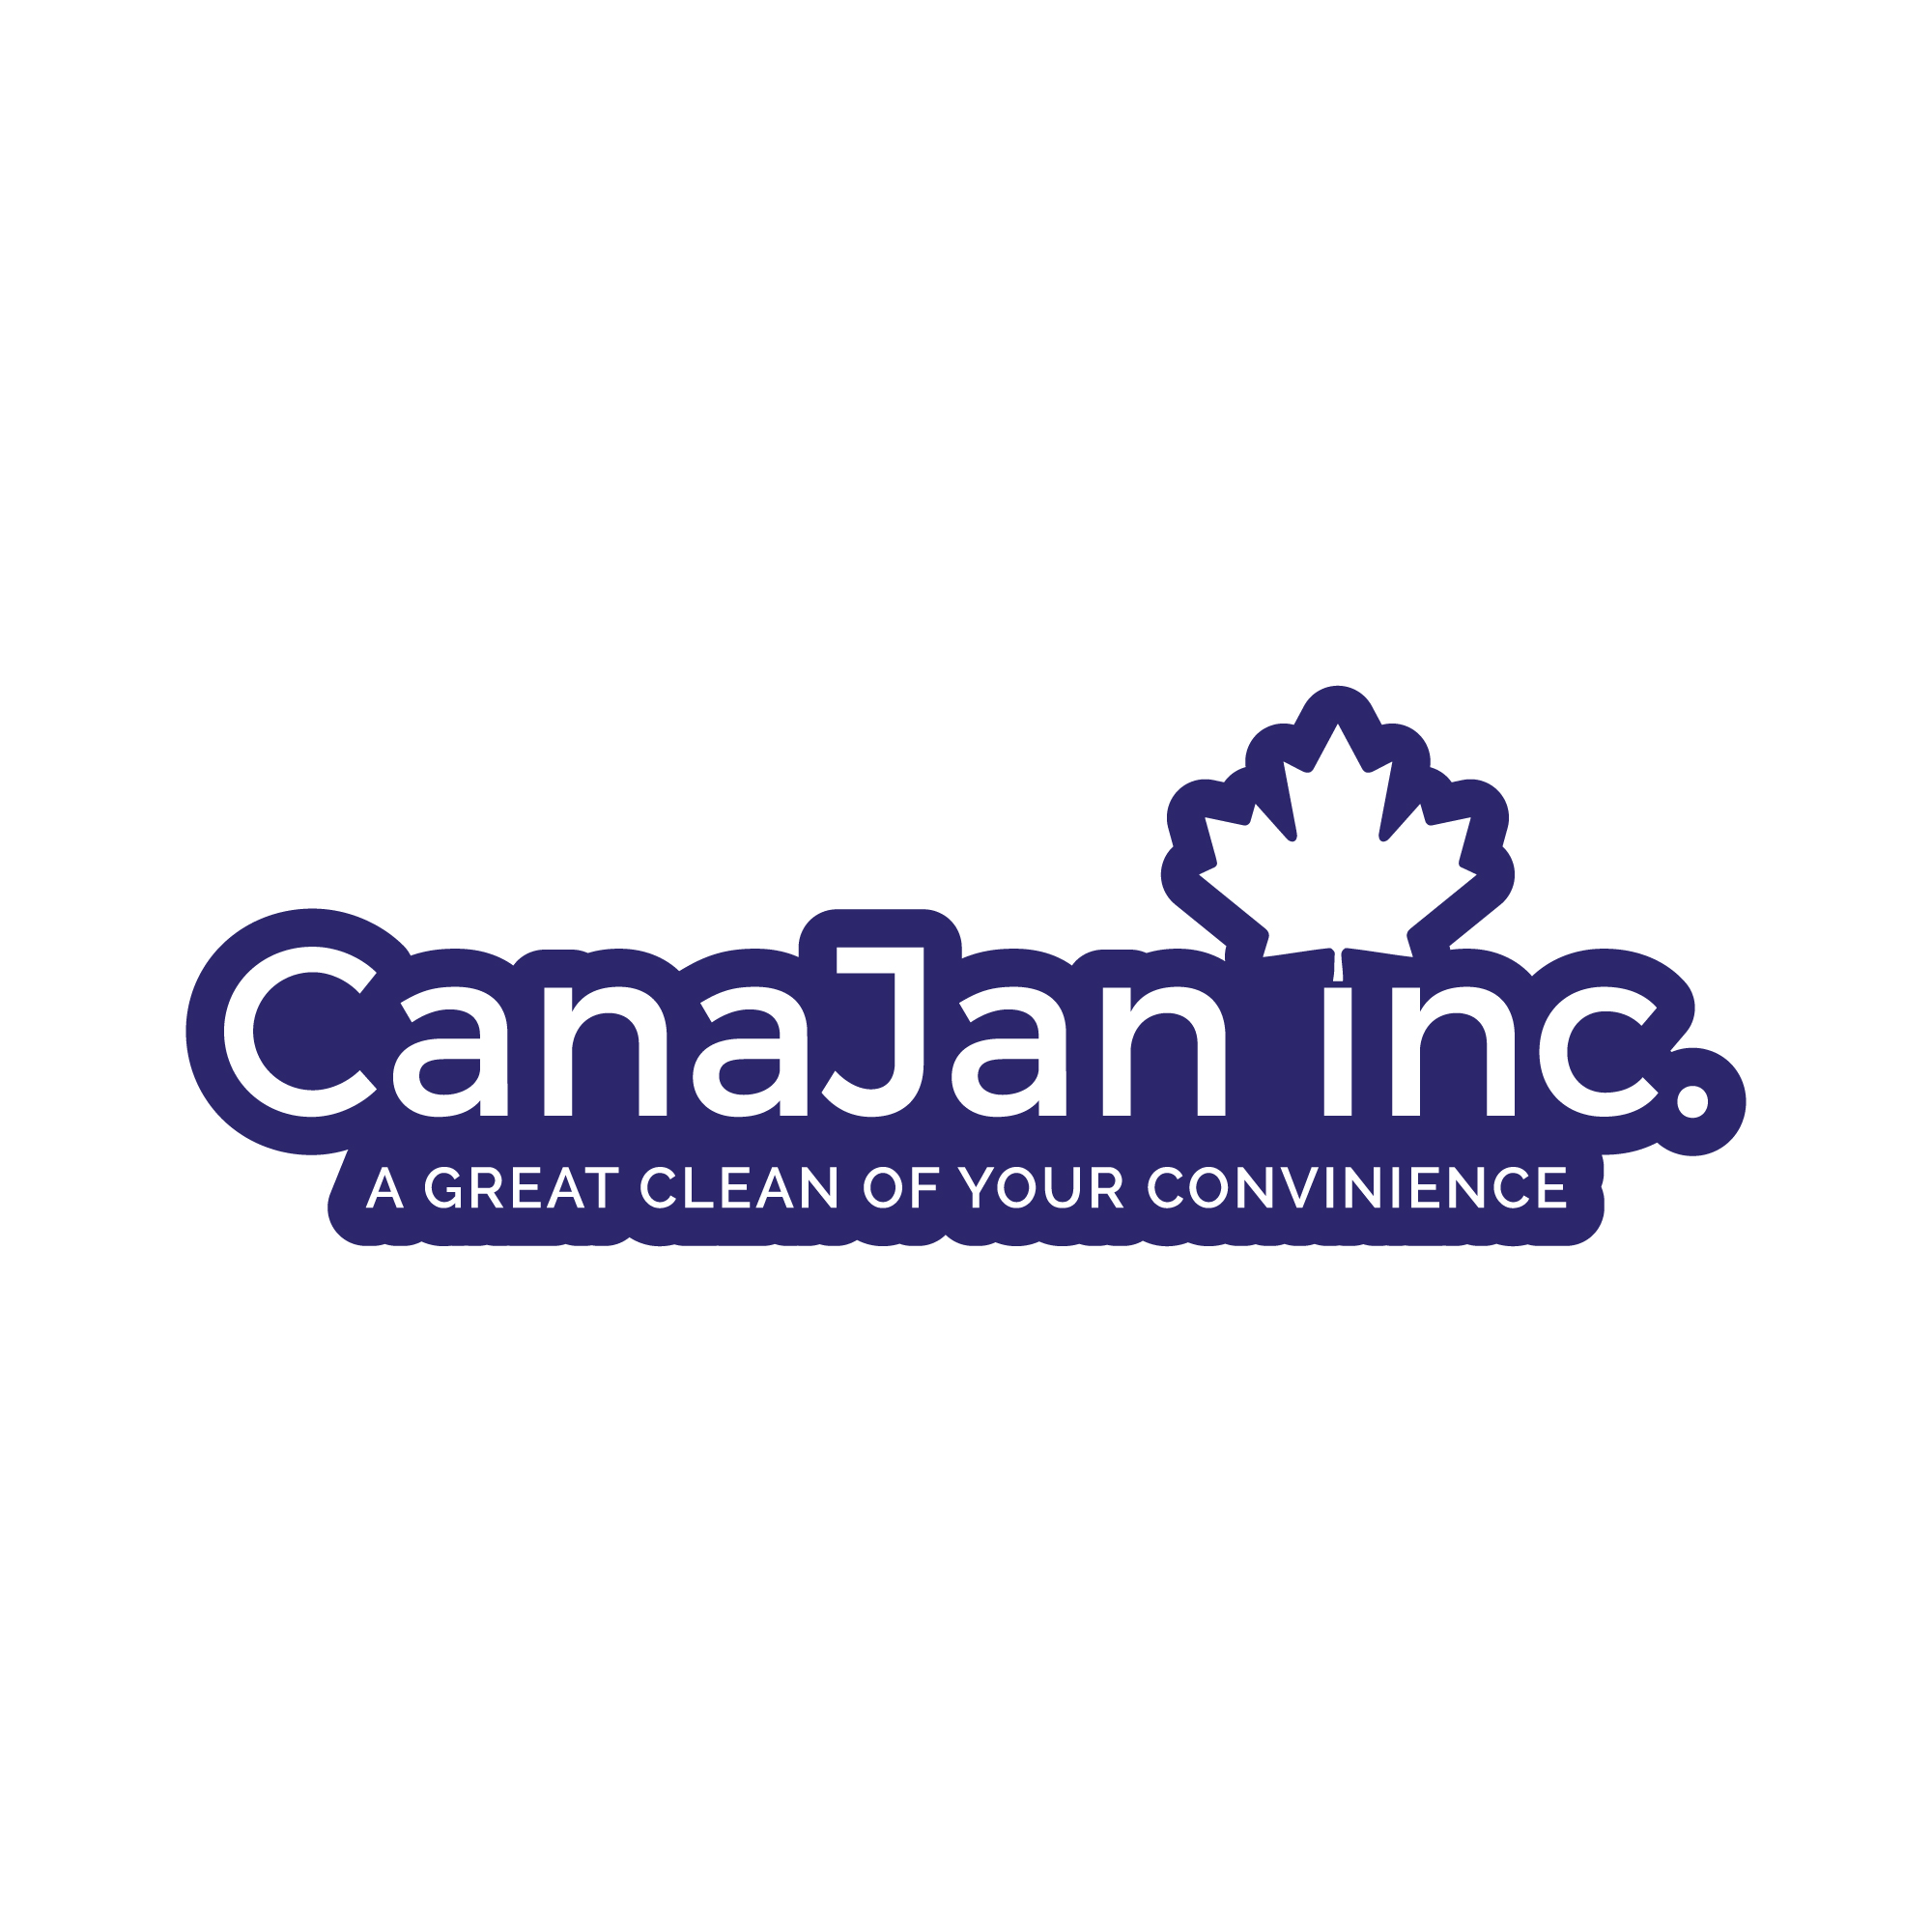 CanaJan-Inc-logo-A - Copy